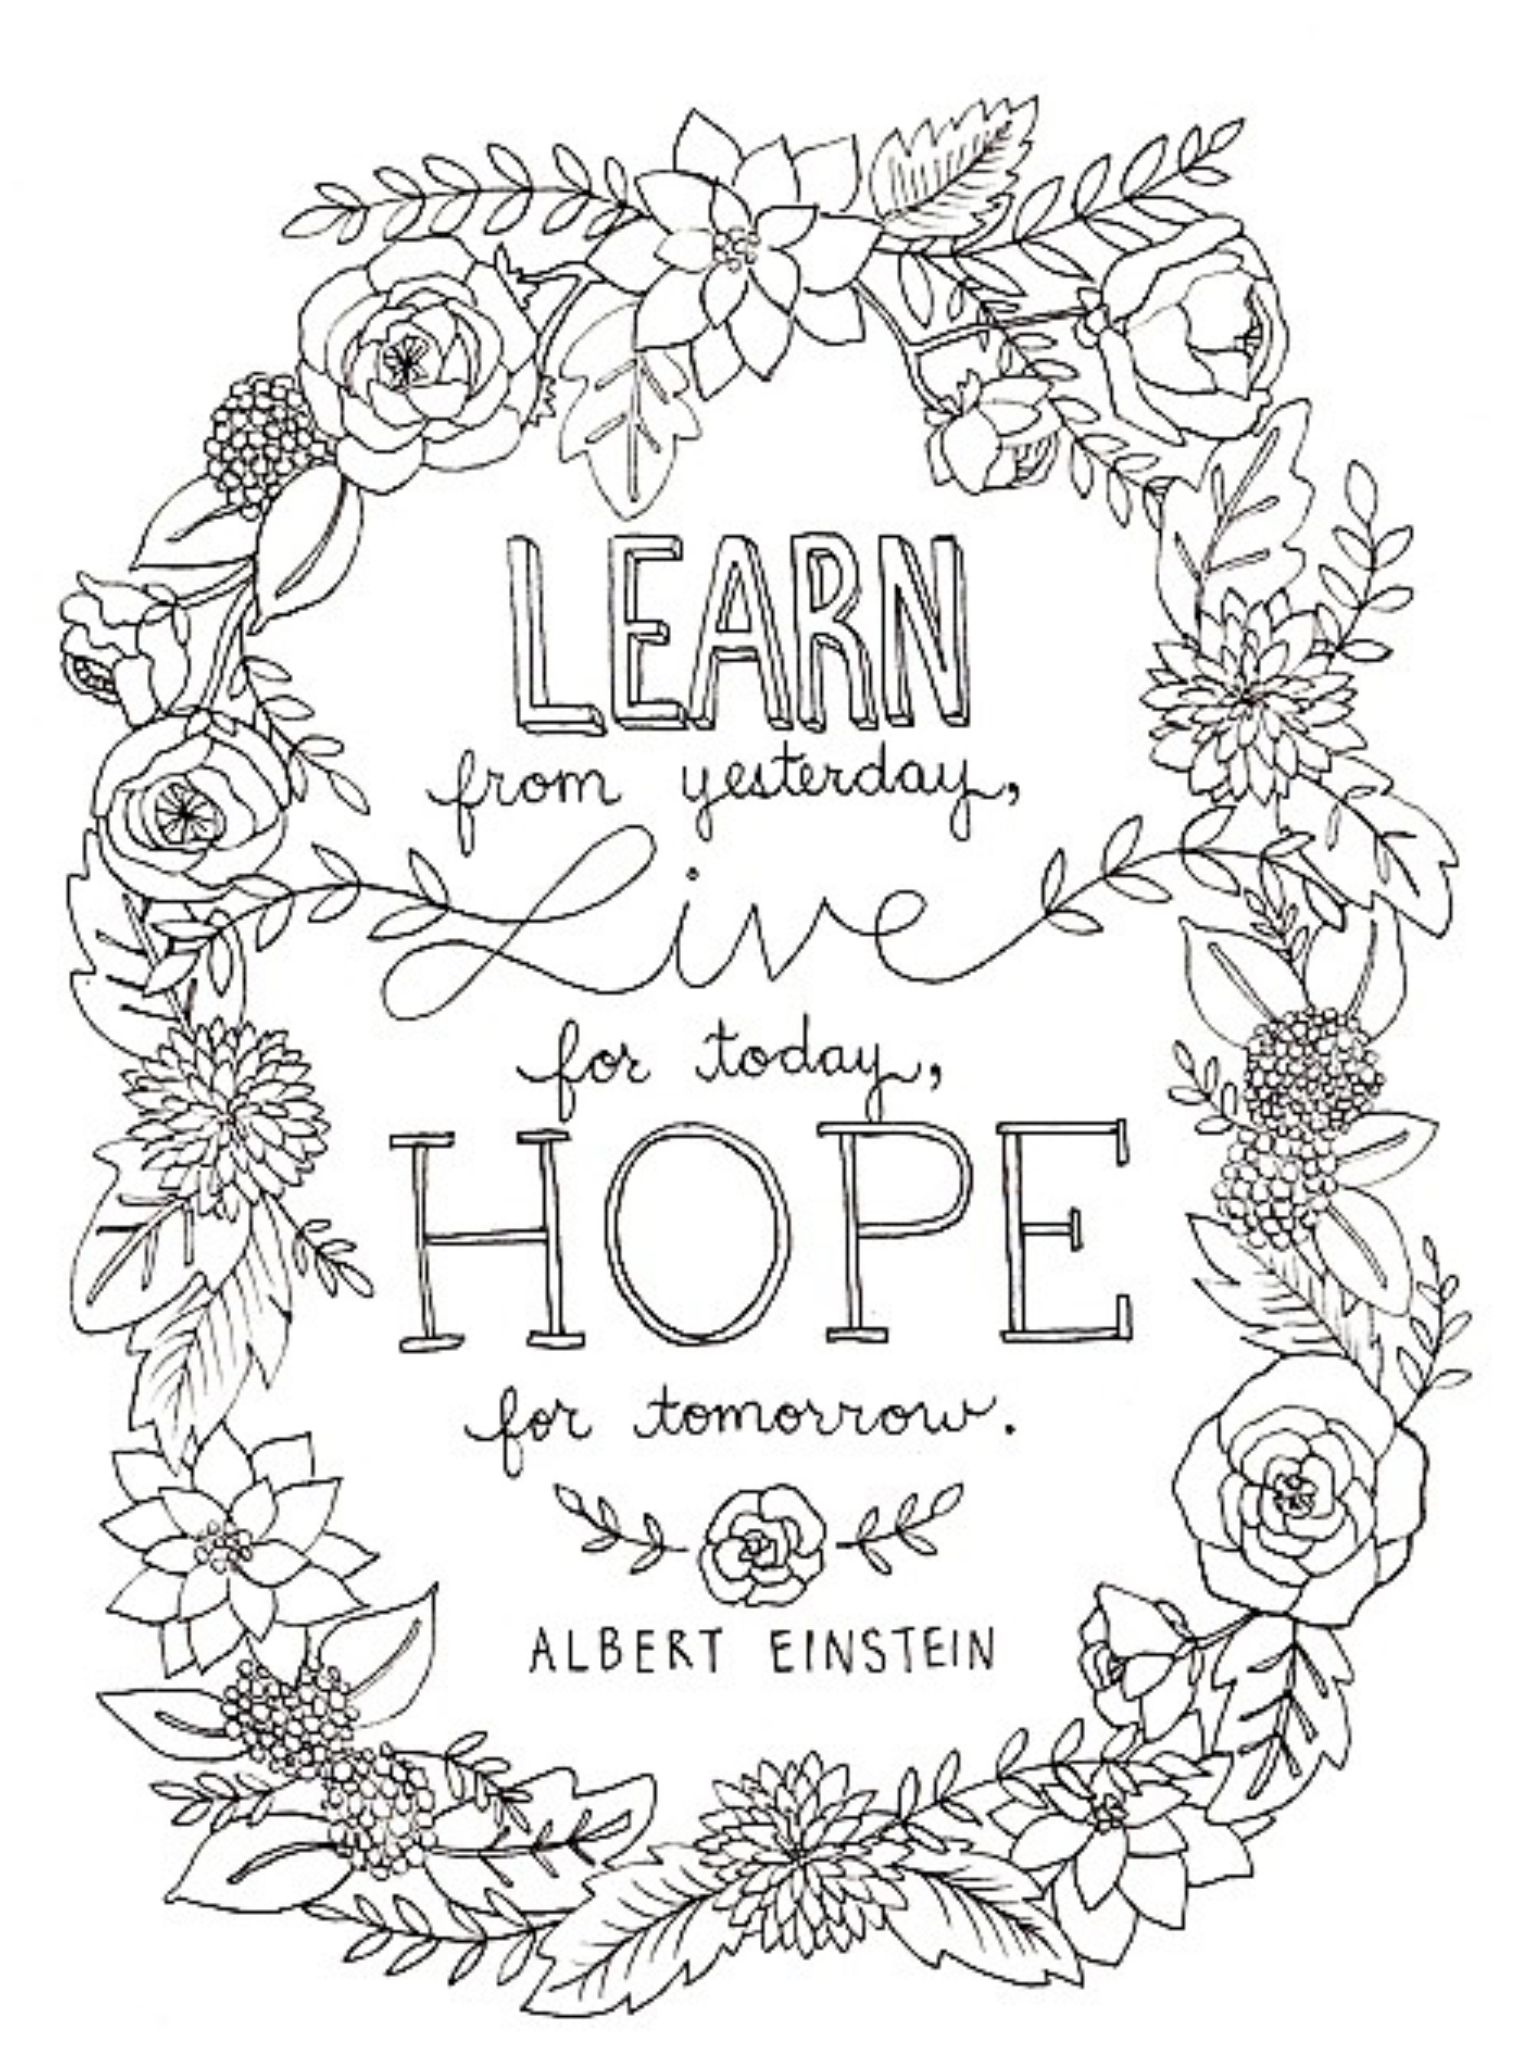 Albert Einstein Quote Quote Coloring Pages Printable Coloring Pages Coloring Pages Inspirational